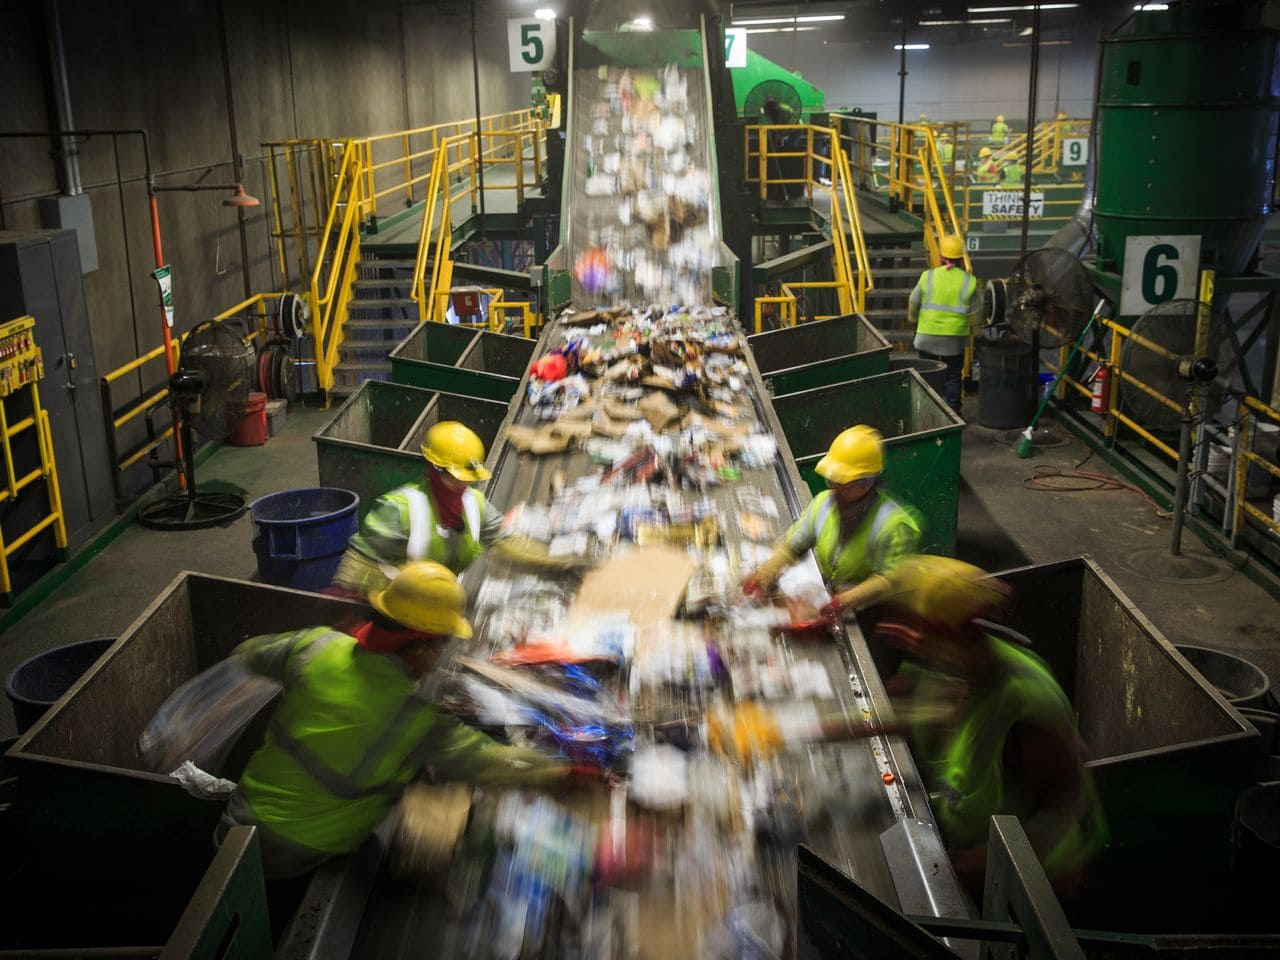 How is garbage recycled in Ukraine? Let's start with sorting.